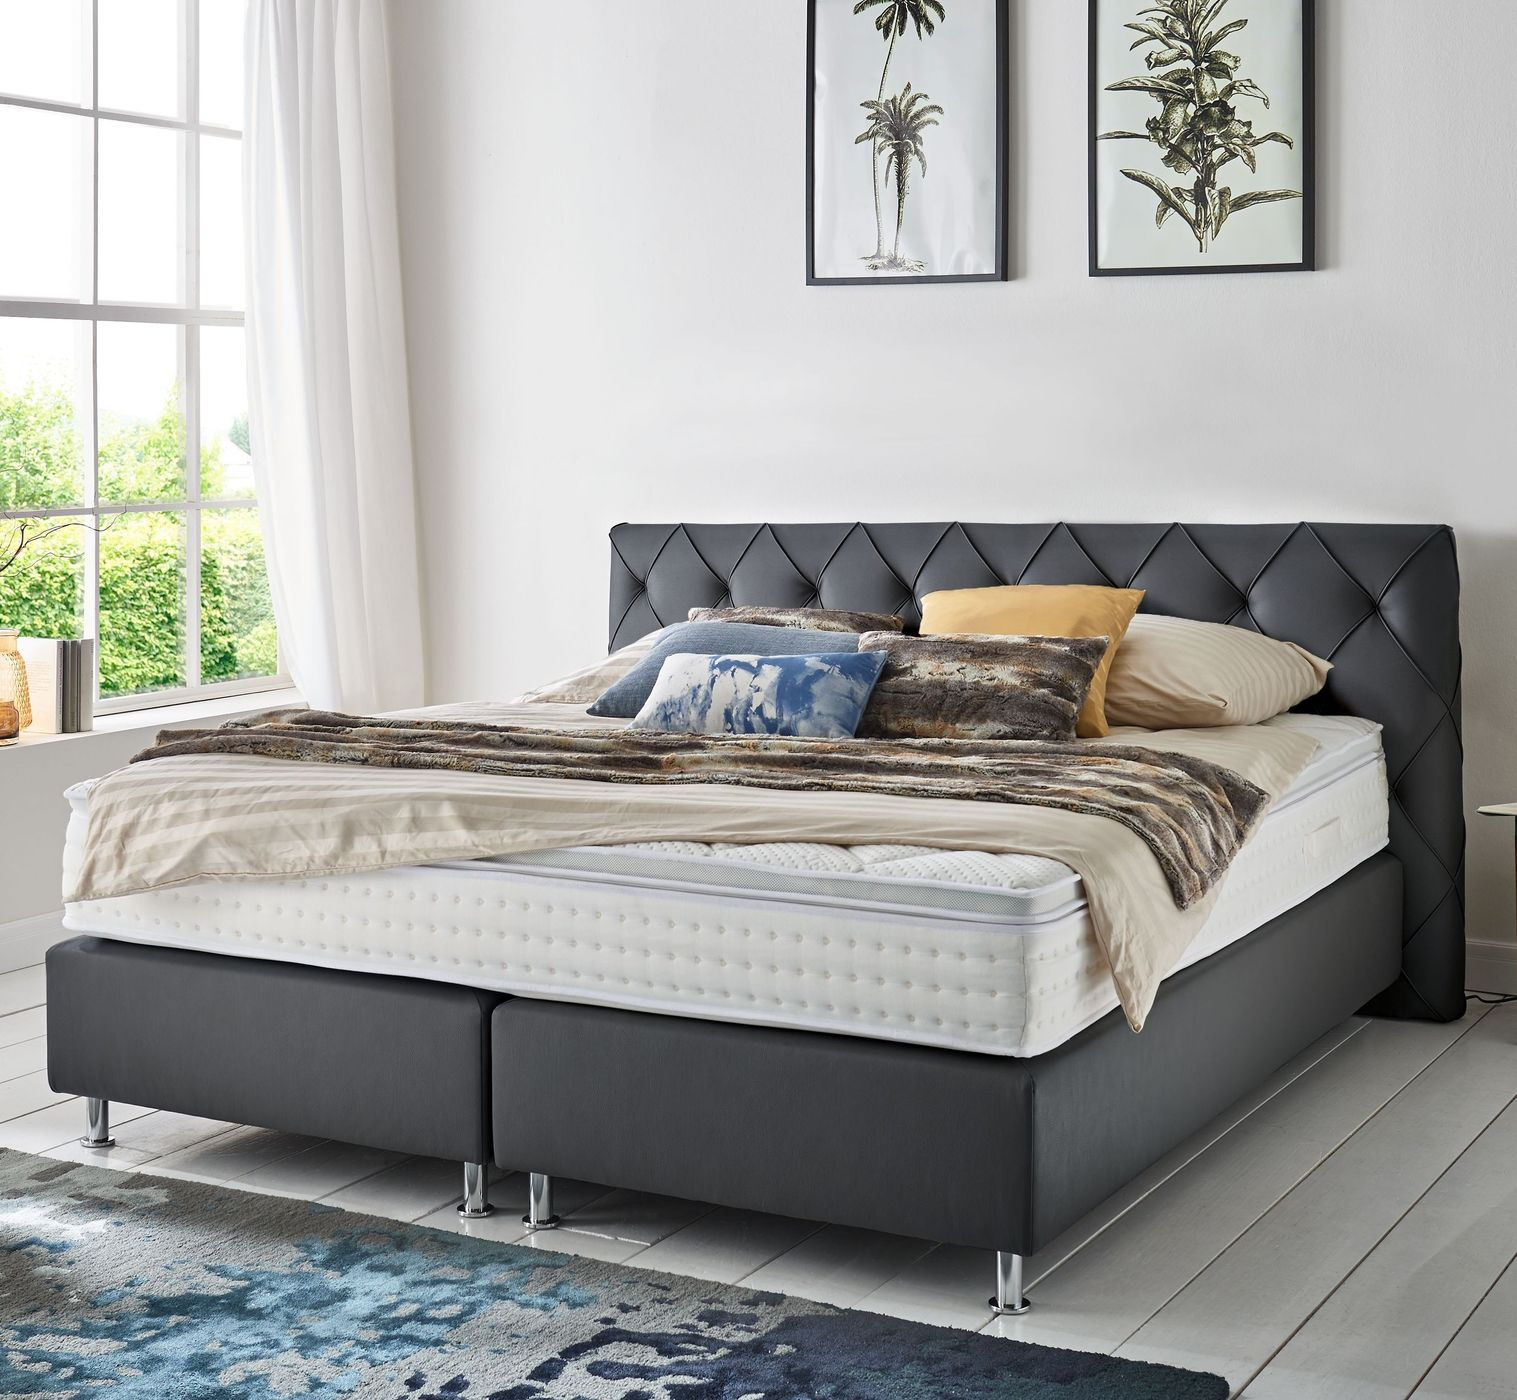 boxspringbett mit niedrigem kopfteil boxspringbett mit niedrigem kopfteil boxspringbetten shop. Black Bedroom Furniture Sets. Home Design Ideas